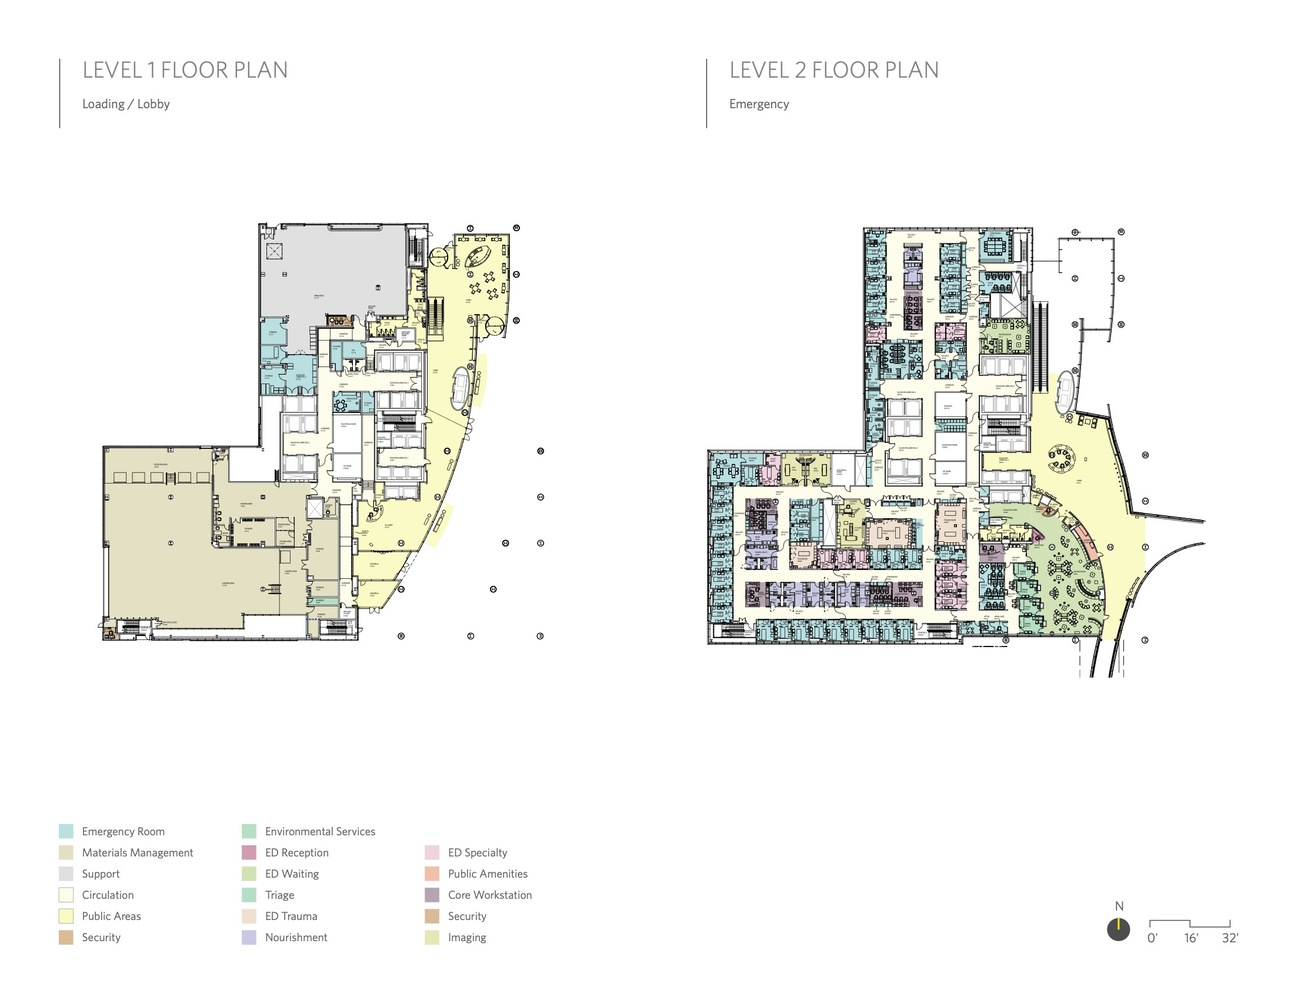 small resolution of ann robert h lurie children s hospital of chicago zgf architects solomon cordwell buenz anderson mikos architects level 1 and 2 floor plan